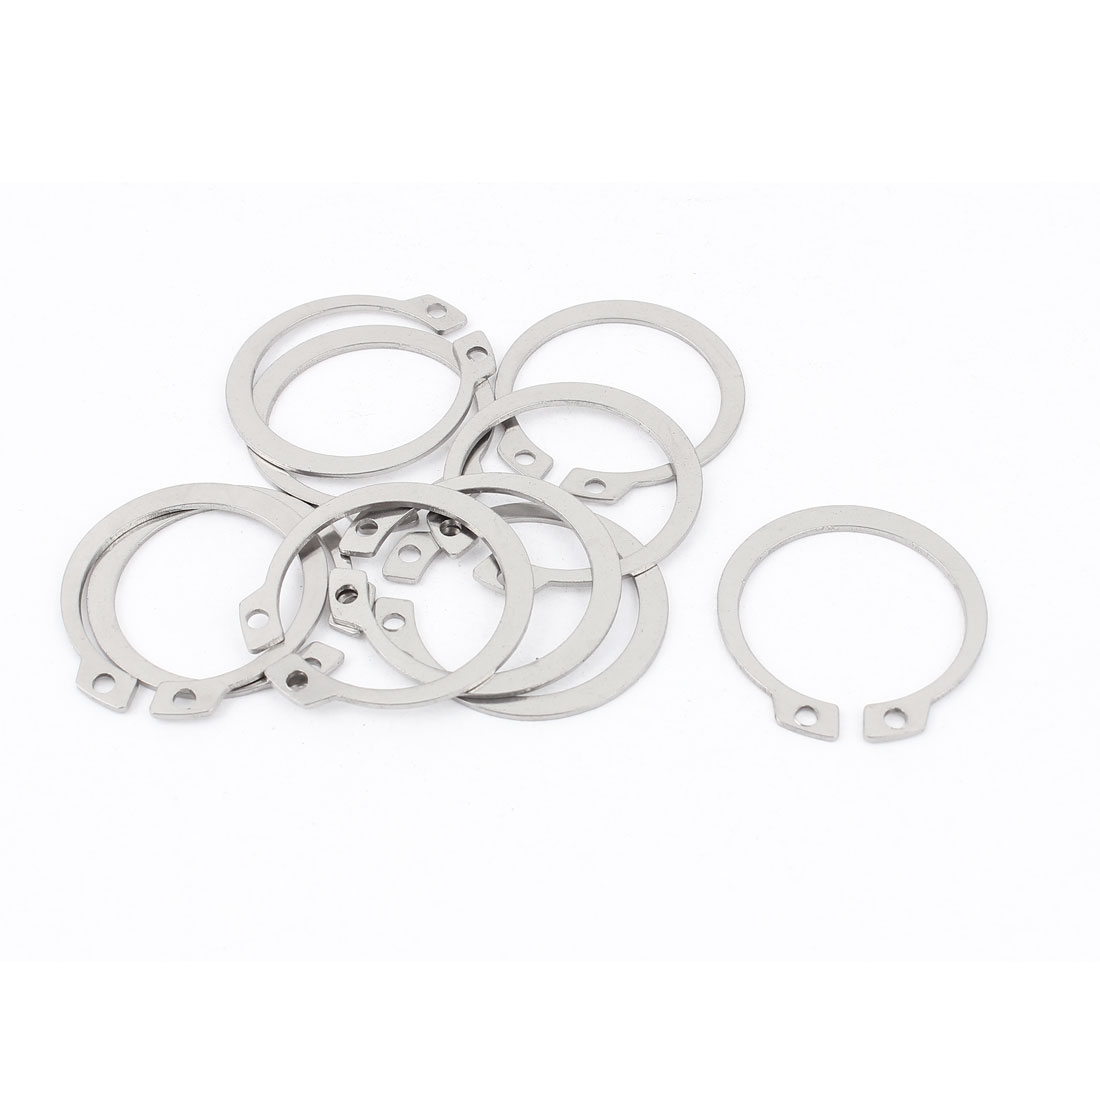 10pcs 304 Stainless Steel External Circlip Retaining Shaft Snap Rings 32mm